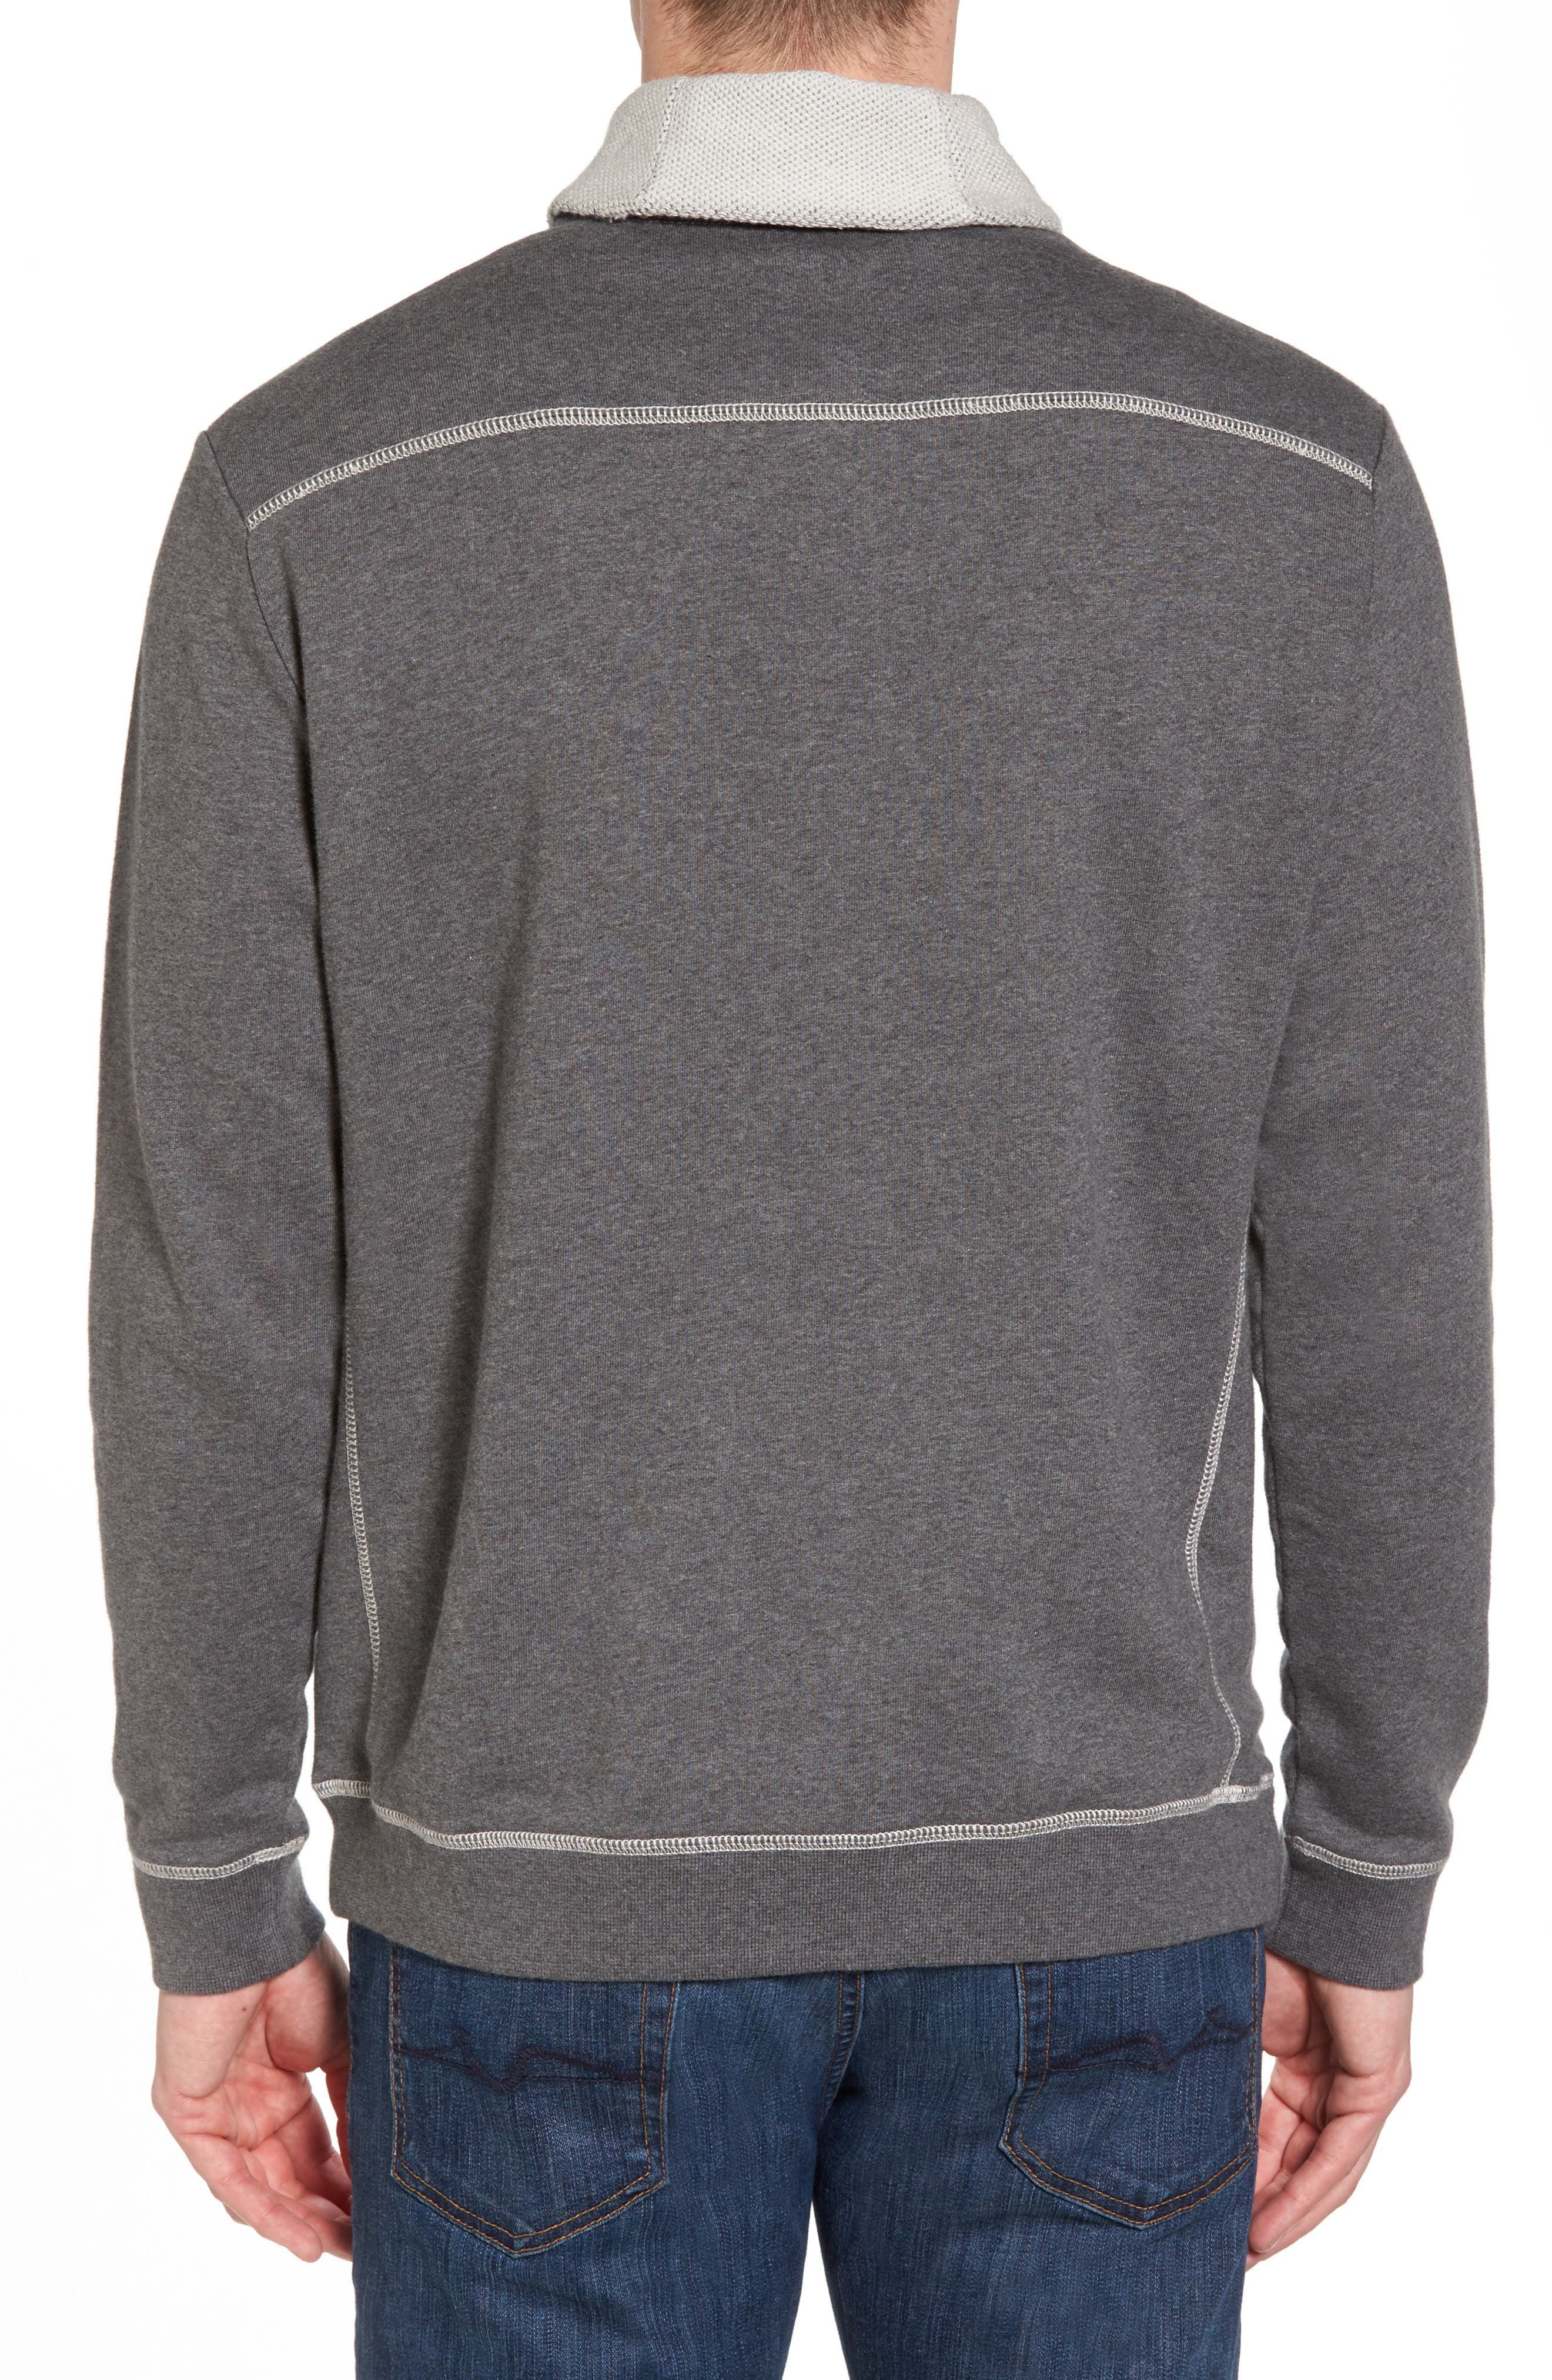 Shorecrest Shawl Collar Pullover,                             Alternate thumbnail 2, color,                             Charcoal Heather